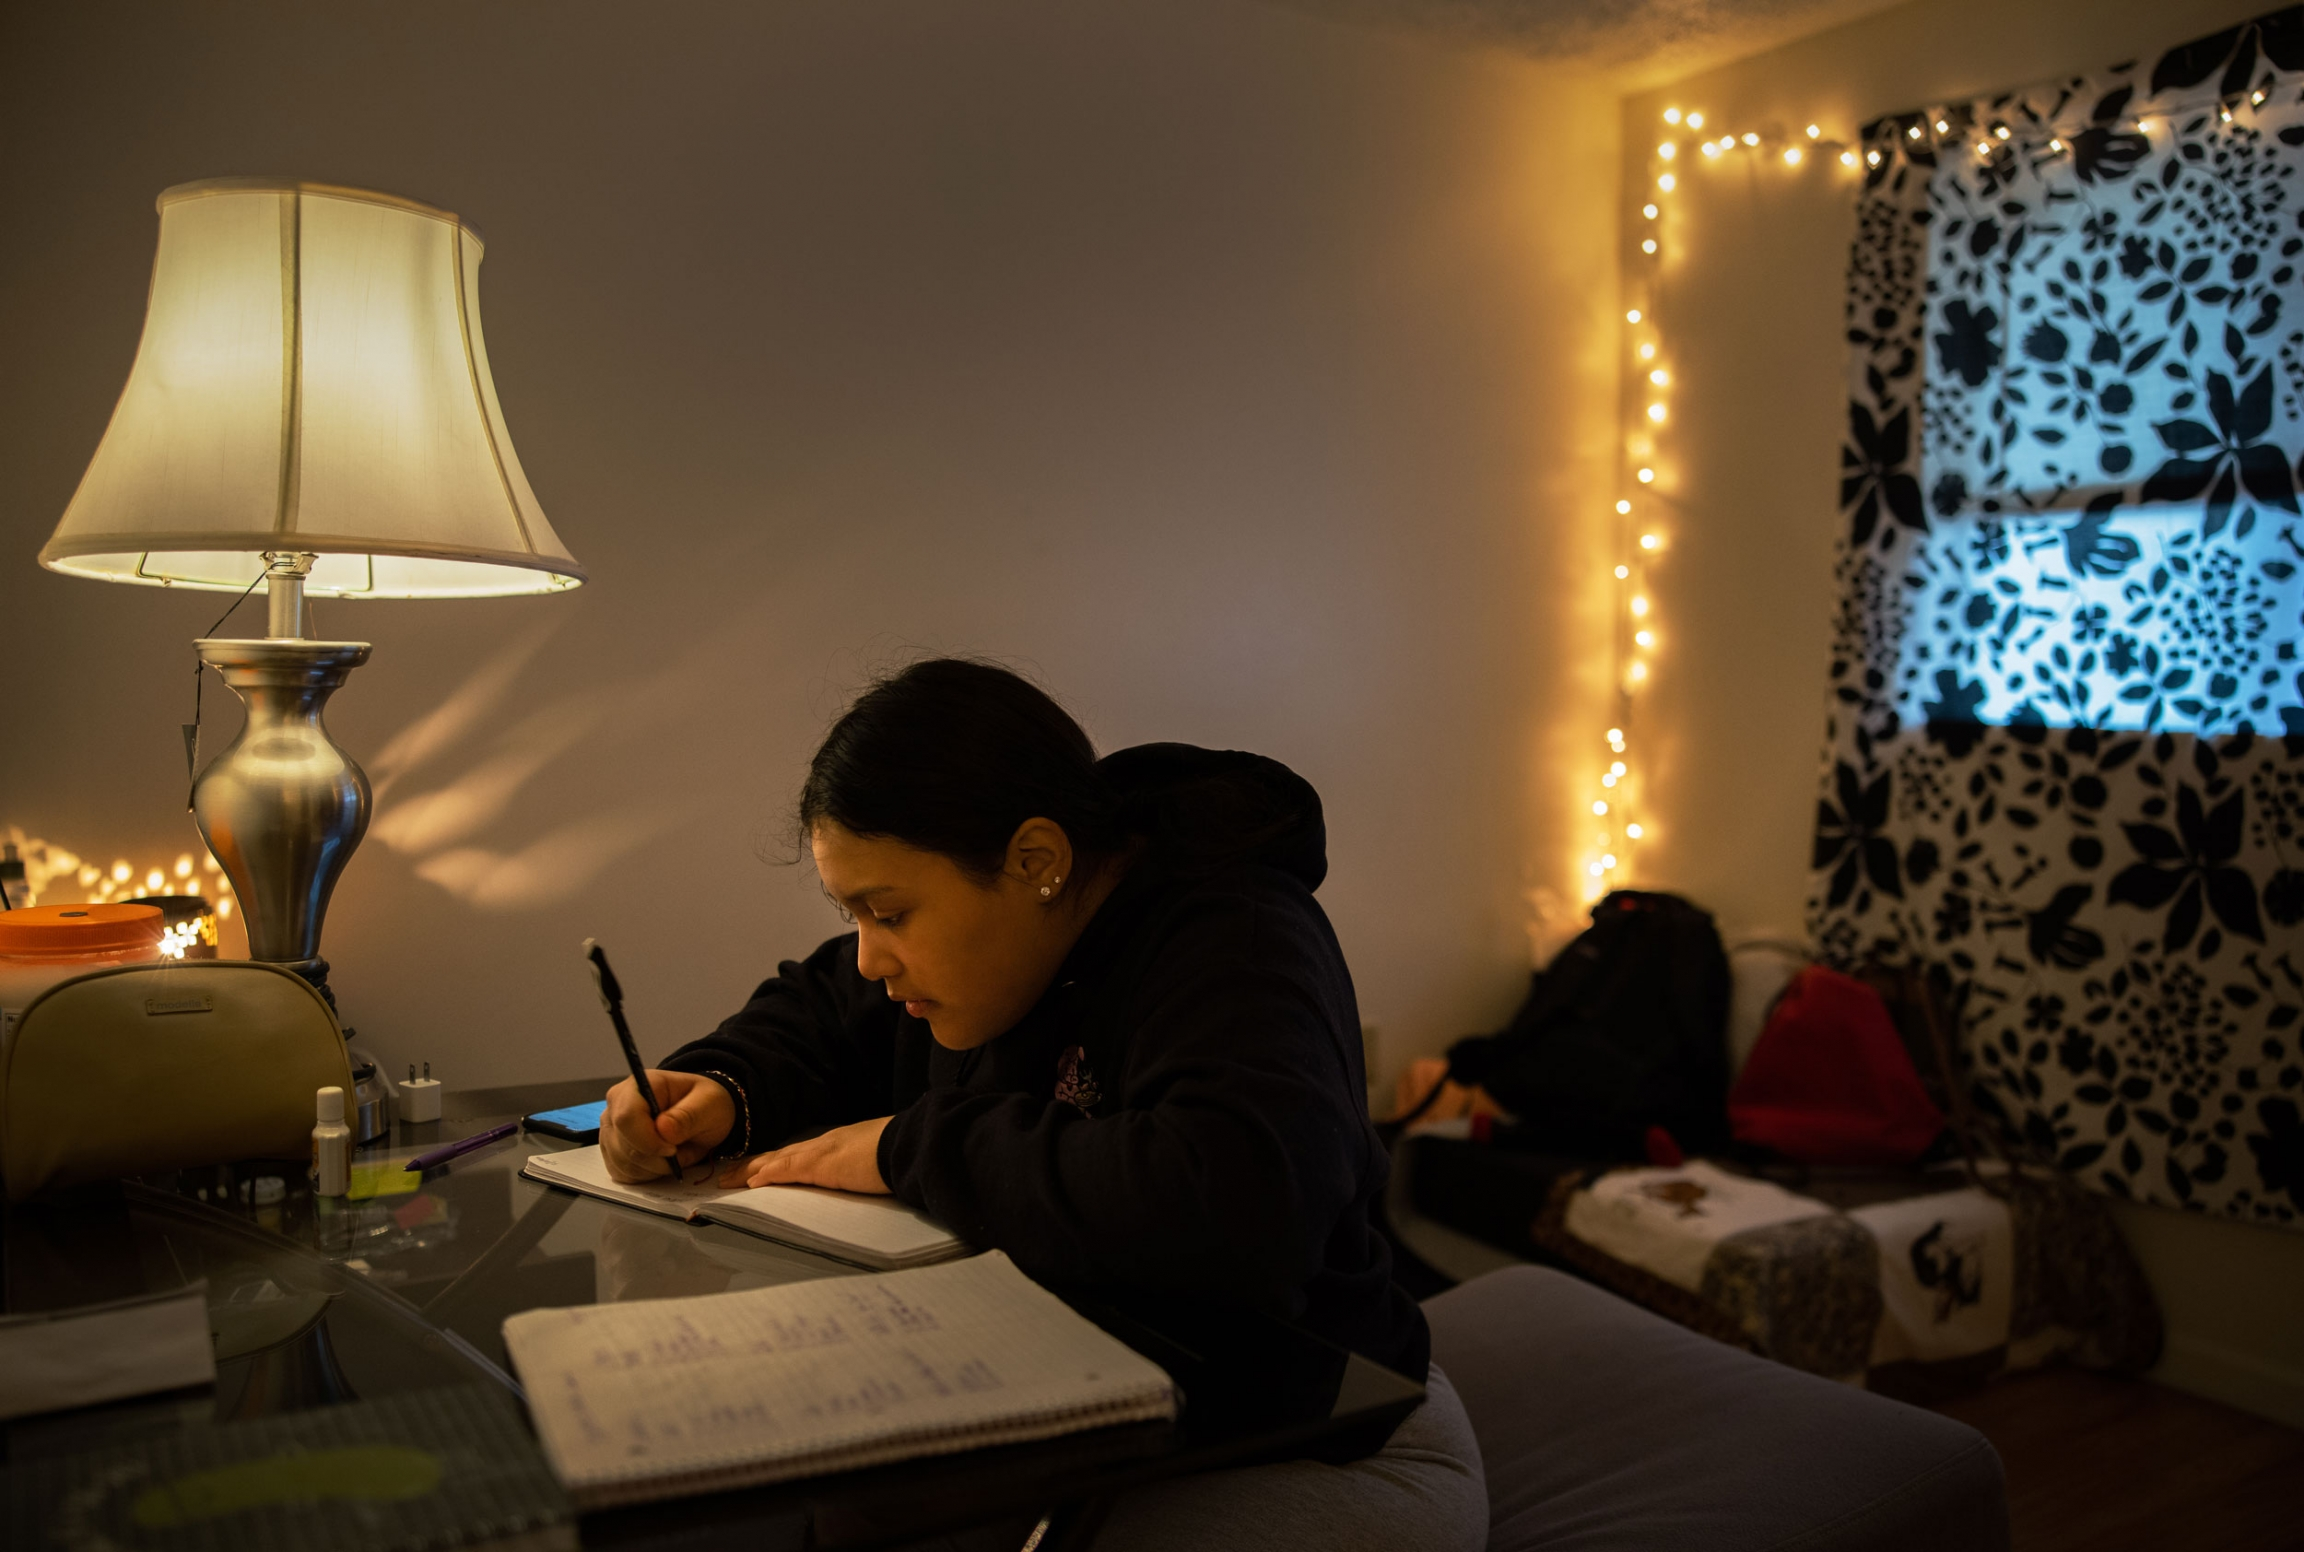 A woman is shown sitting at a desk writing in her journal with a lamp off to the side.